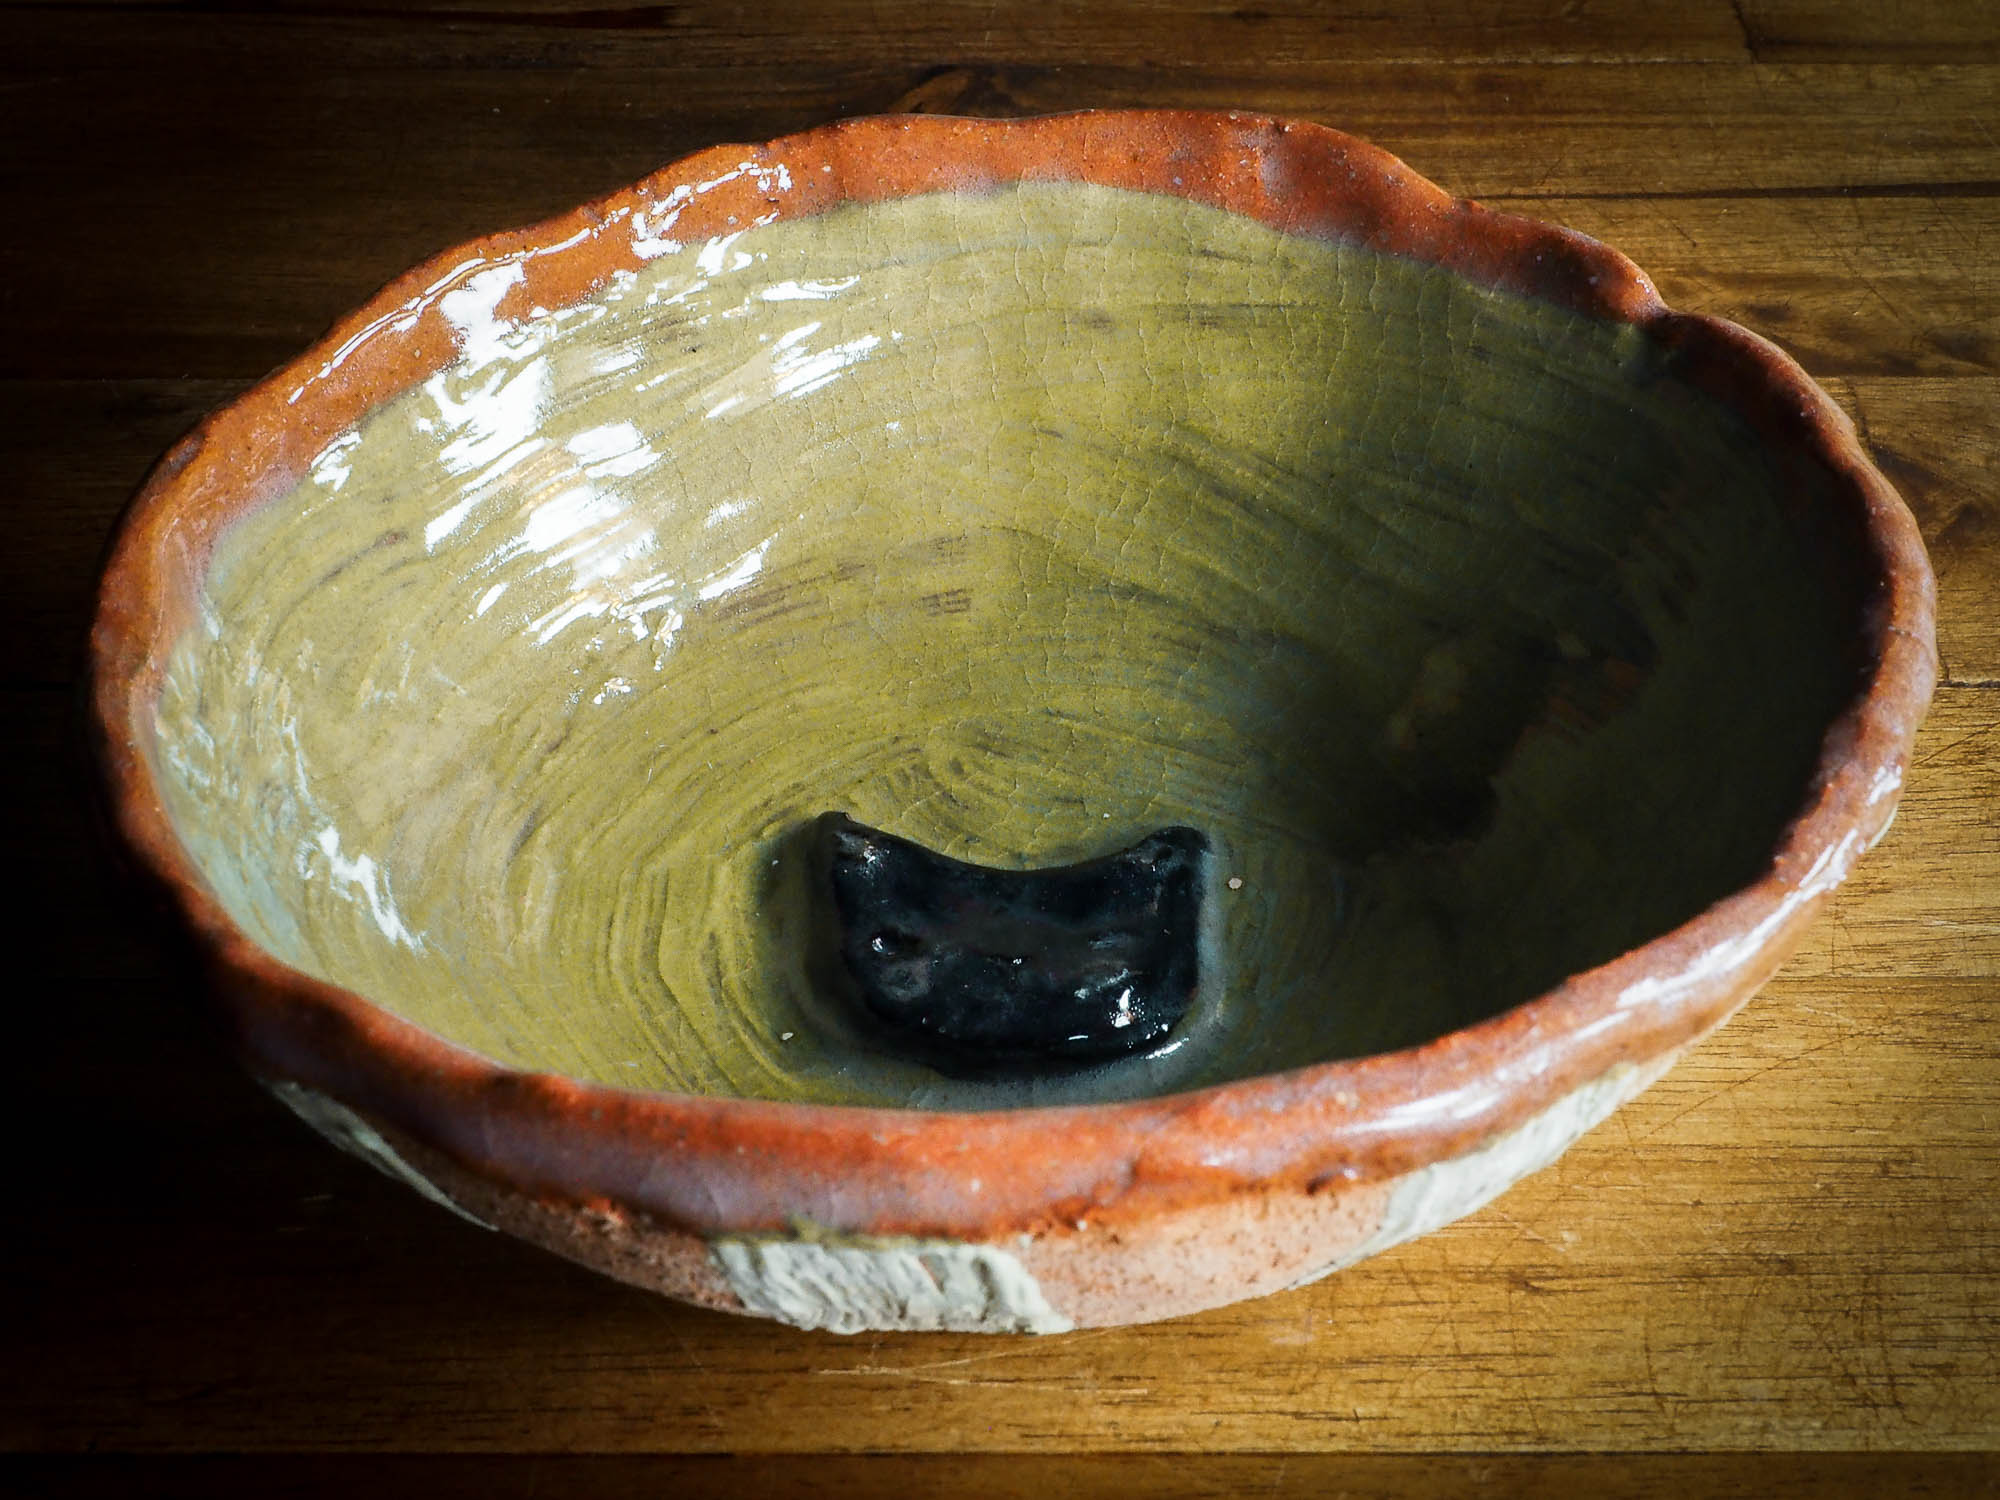 An original Idania Salcido Danita Art pinched ceramic white cat pet food bowl. Handmade from locally foraged clay, this glazed ceramics one of a kind artwork is perfect for any kitchen plate and bowls unique collection. A hand made black cat waits for you at the bottom of this brown and green striped pet food bowl.